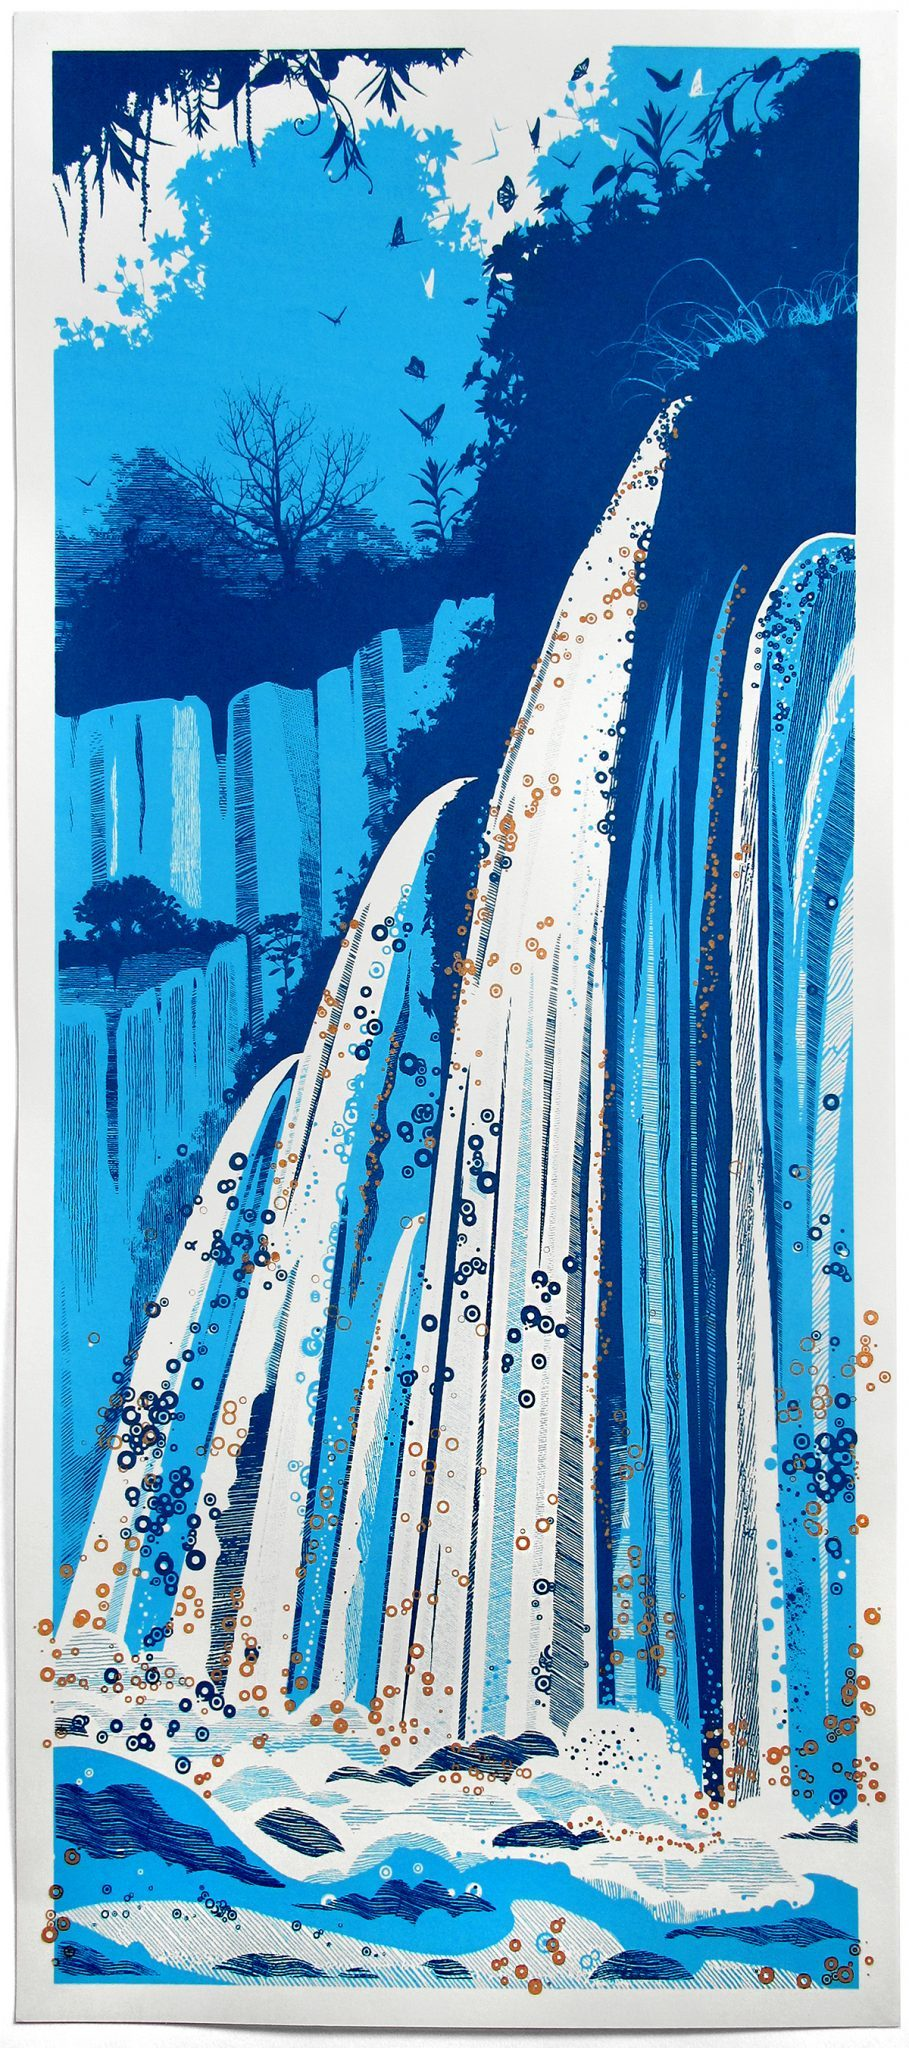 Waterfall screen print - Chris Keegan